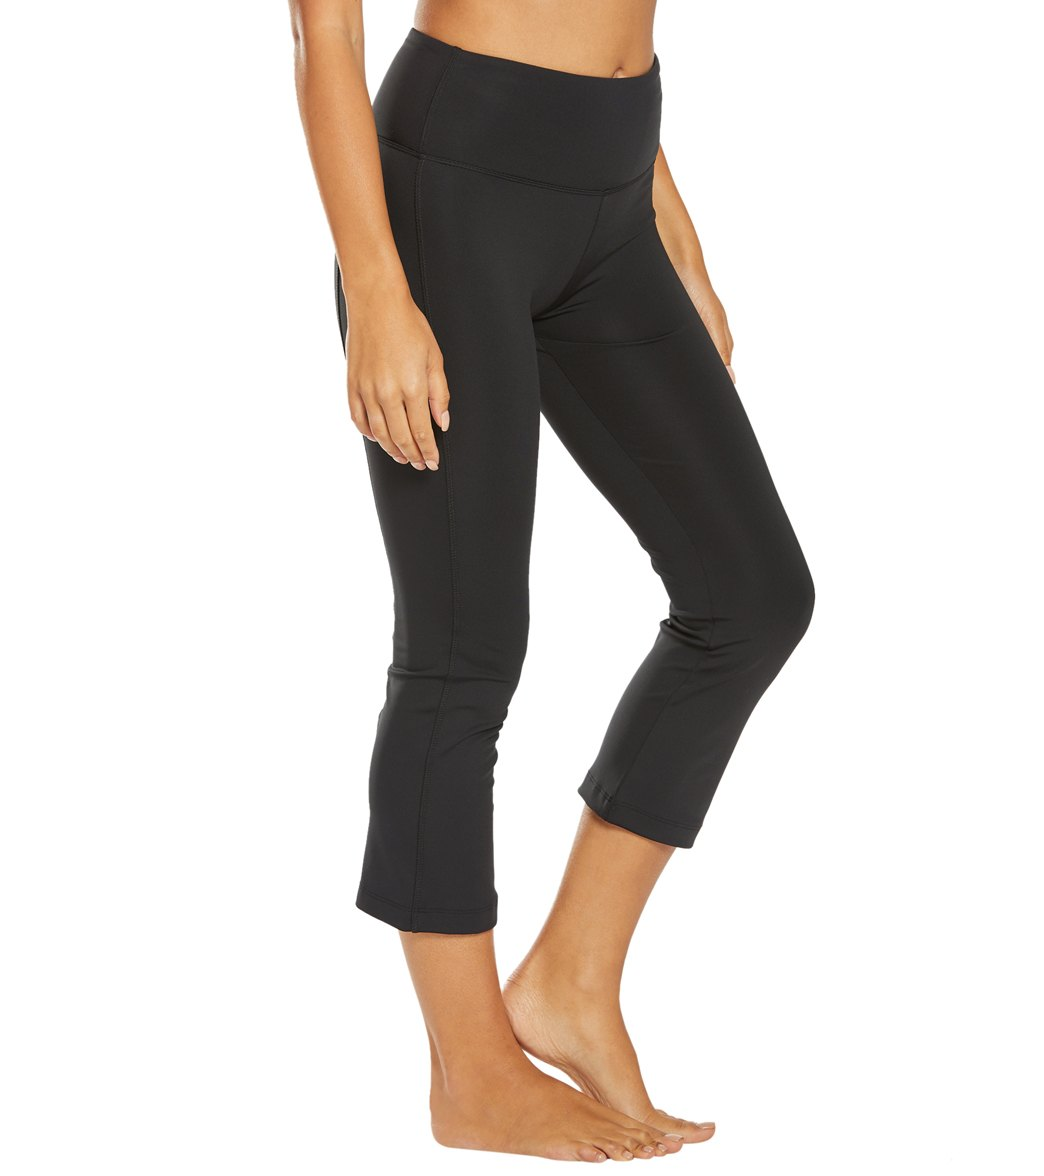 Balance Collection Hattie Flare Yoga Capri Pants - Black Cotton